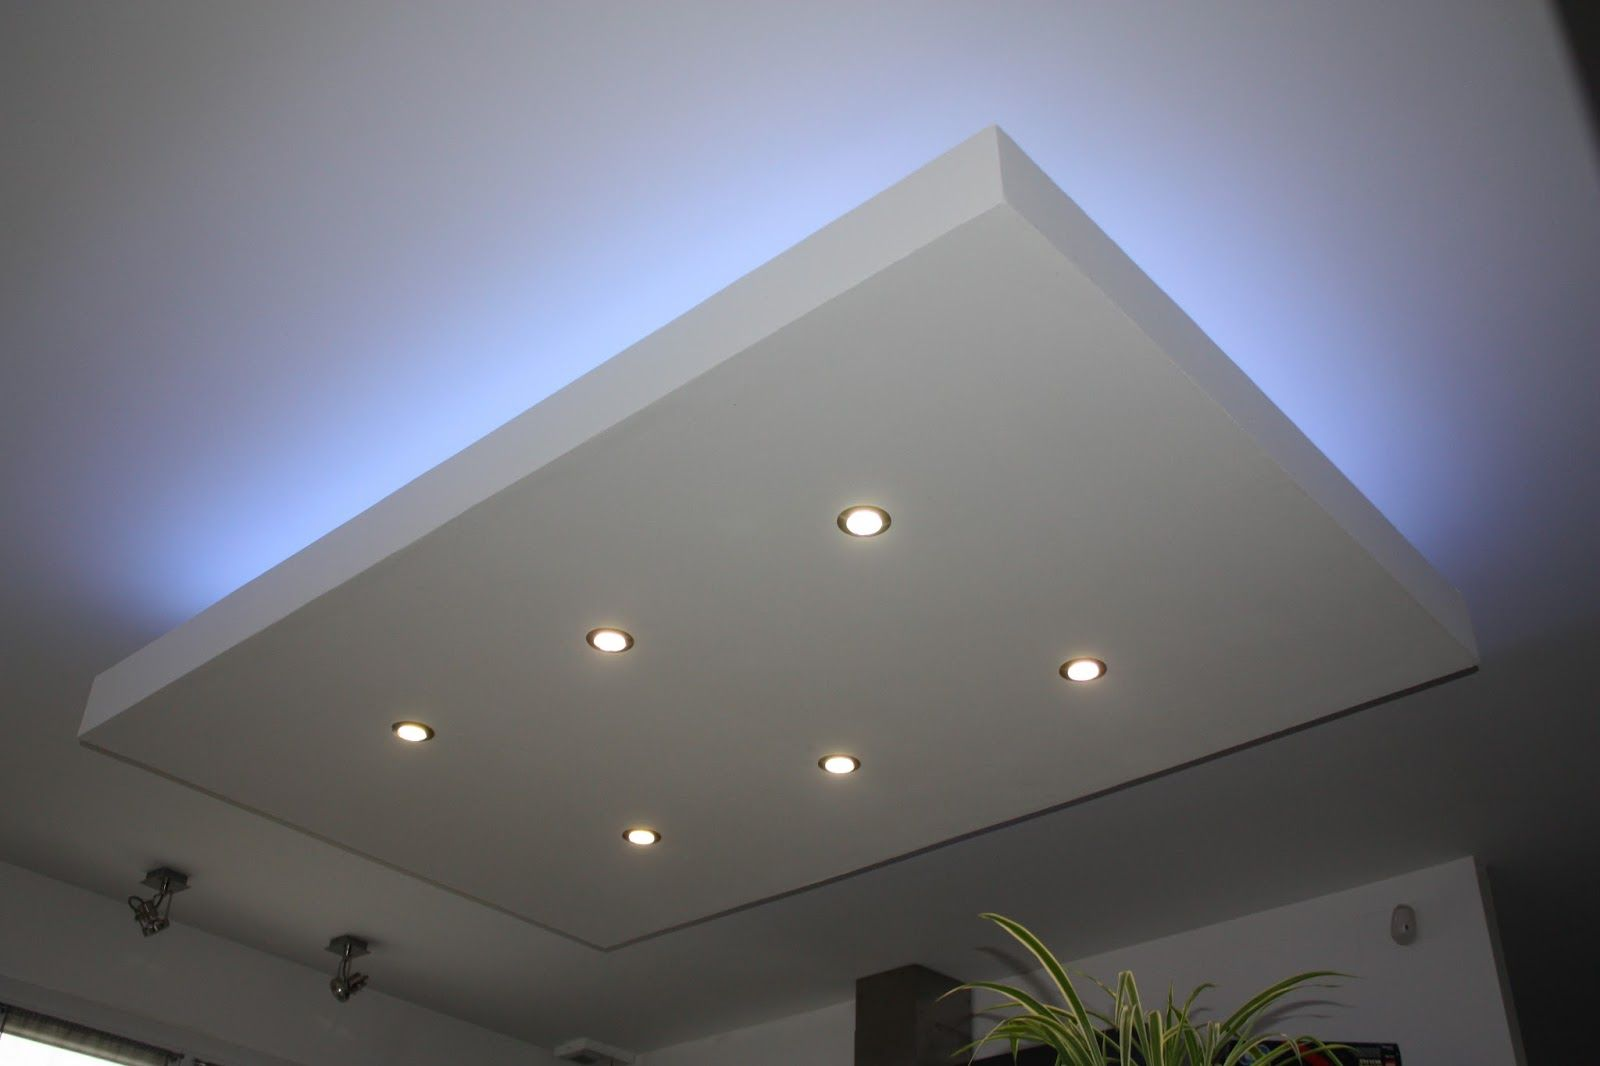 éclairage Led Maison Nouvel Article Eclairage Led Indirect Sur Faux Plafond